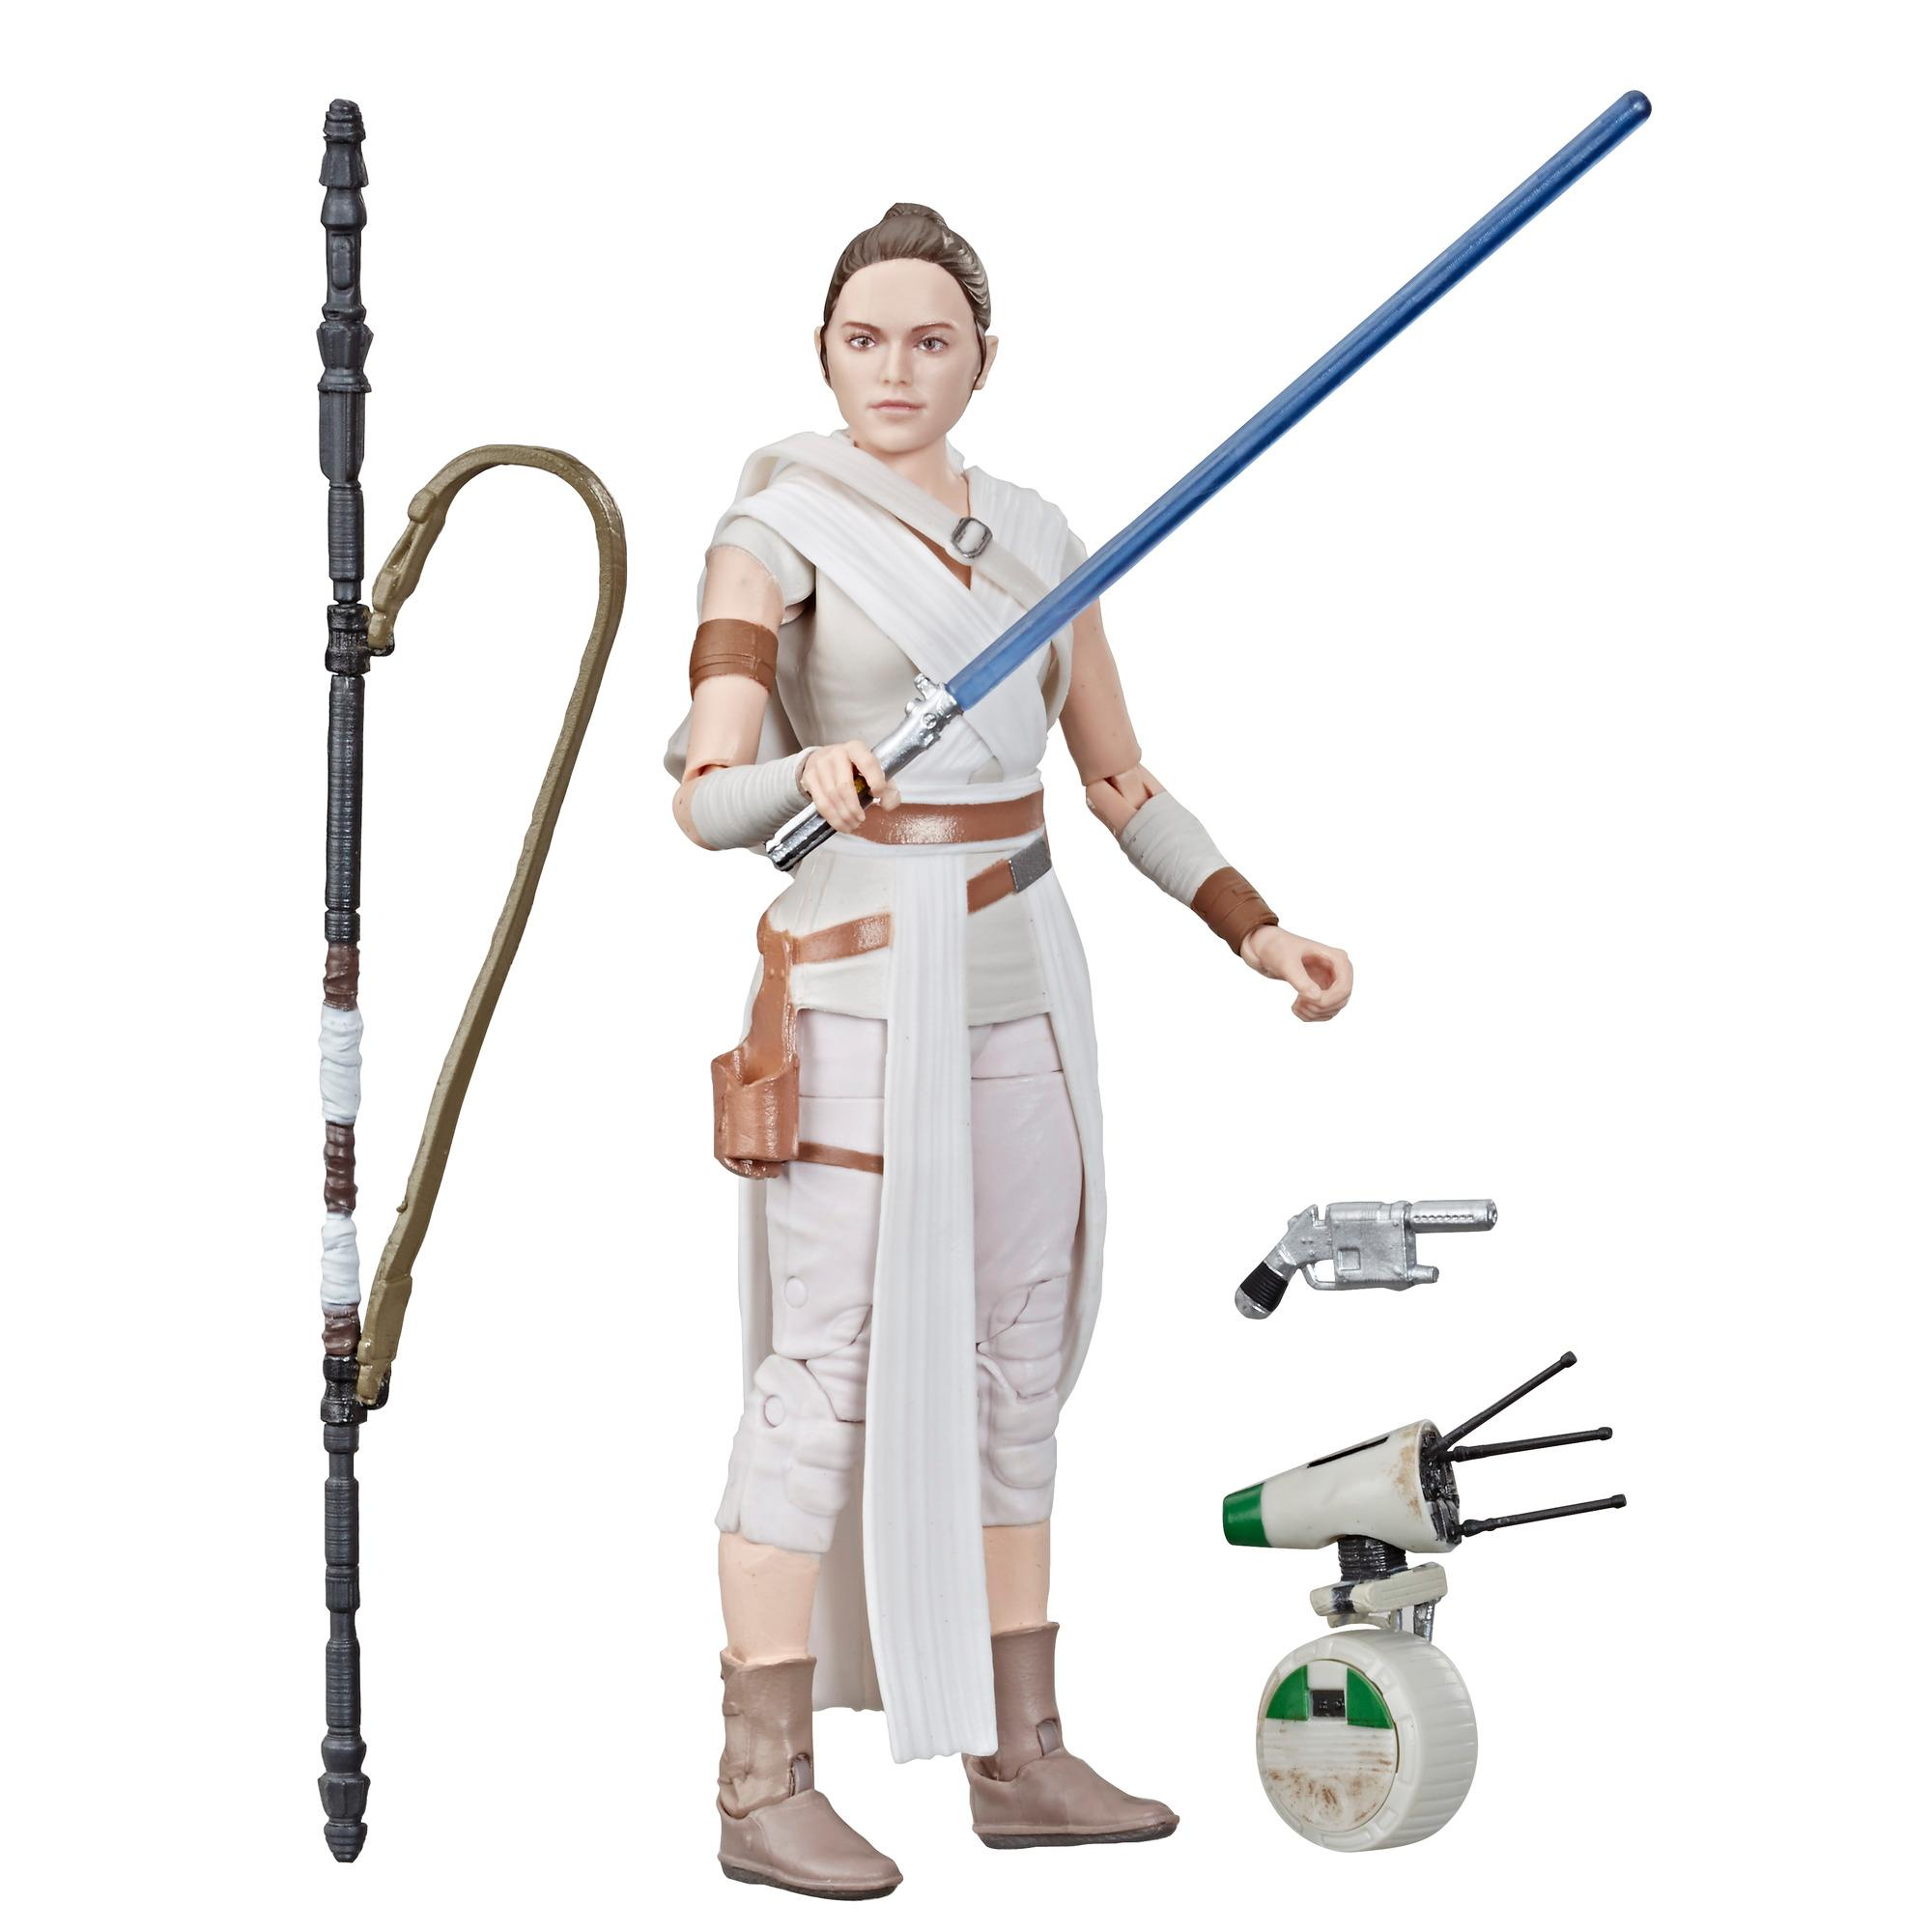 Star Wars The Black Series Rey and D-O Toys 6-inch Scale Collectible Action Figures, Toys for Kids Ages 4 and Up